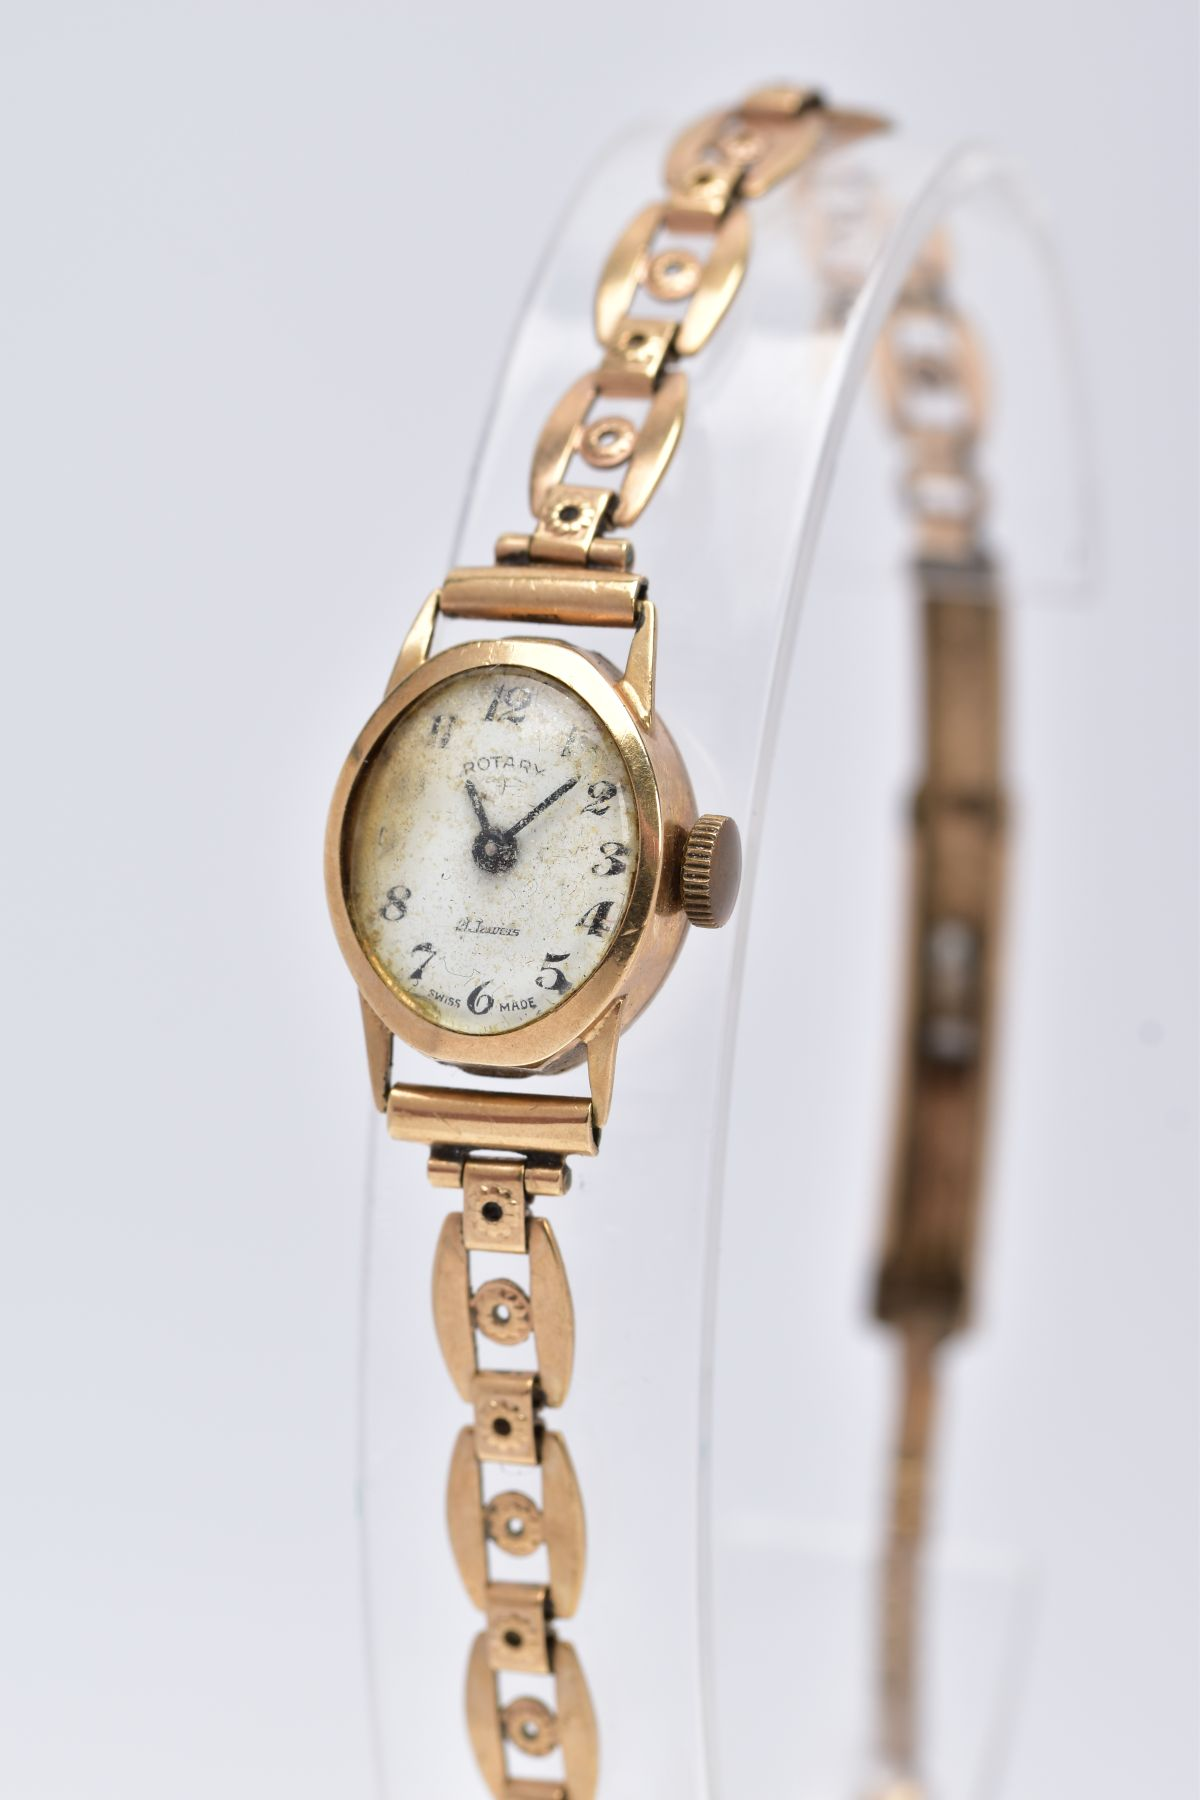 A LADY'S 9CT GOLD ROTARY WRISTWATCH', oval case measuring approximately 16.5mm x 14.0mm, - Image 3 of 5